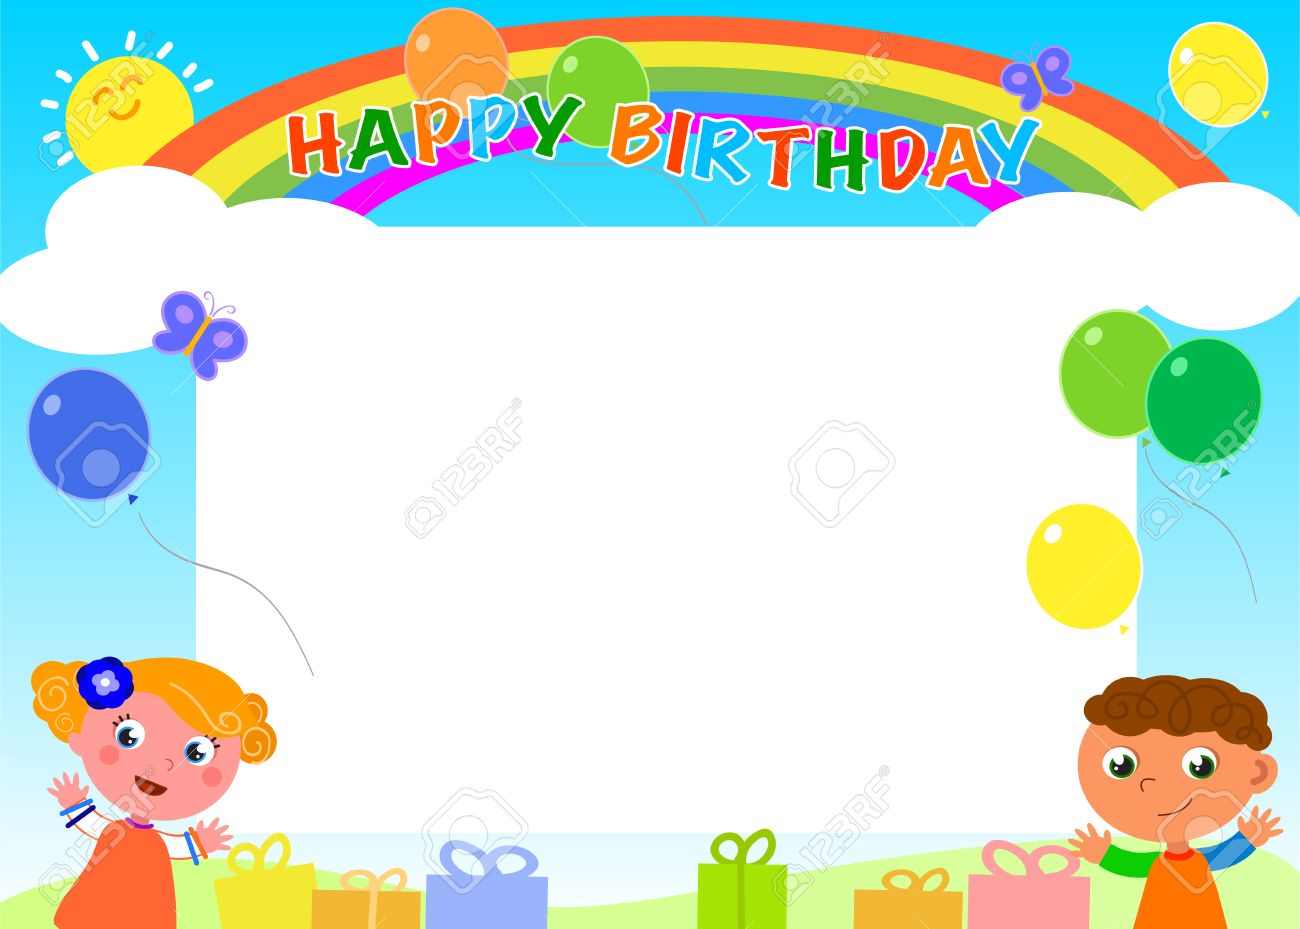 Happy Birthday Frame With Rainbow Kids And Balloons Royalty Free ...